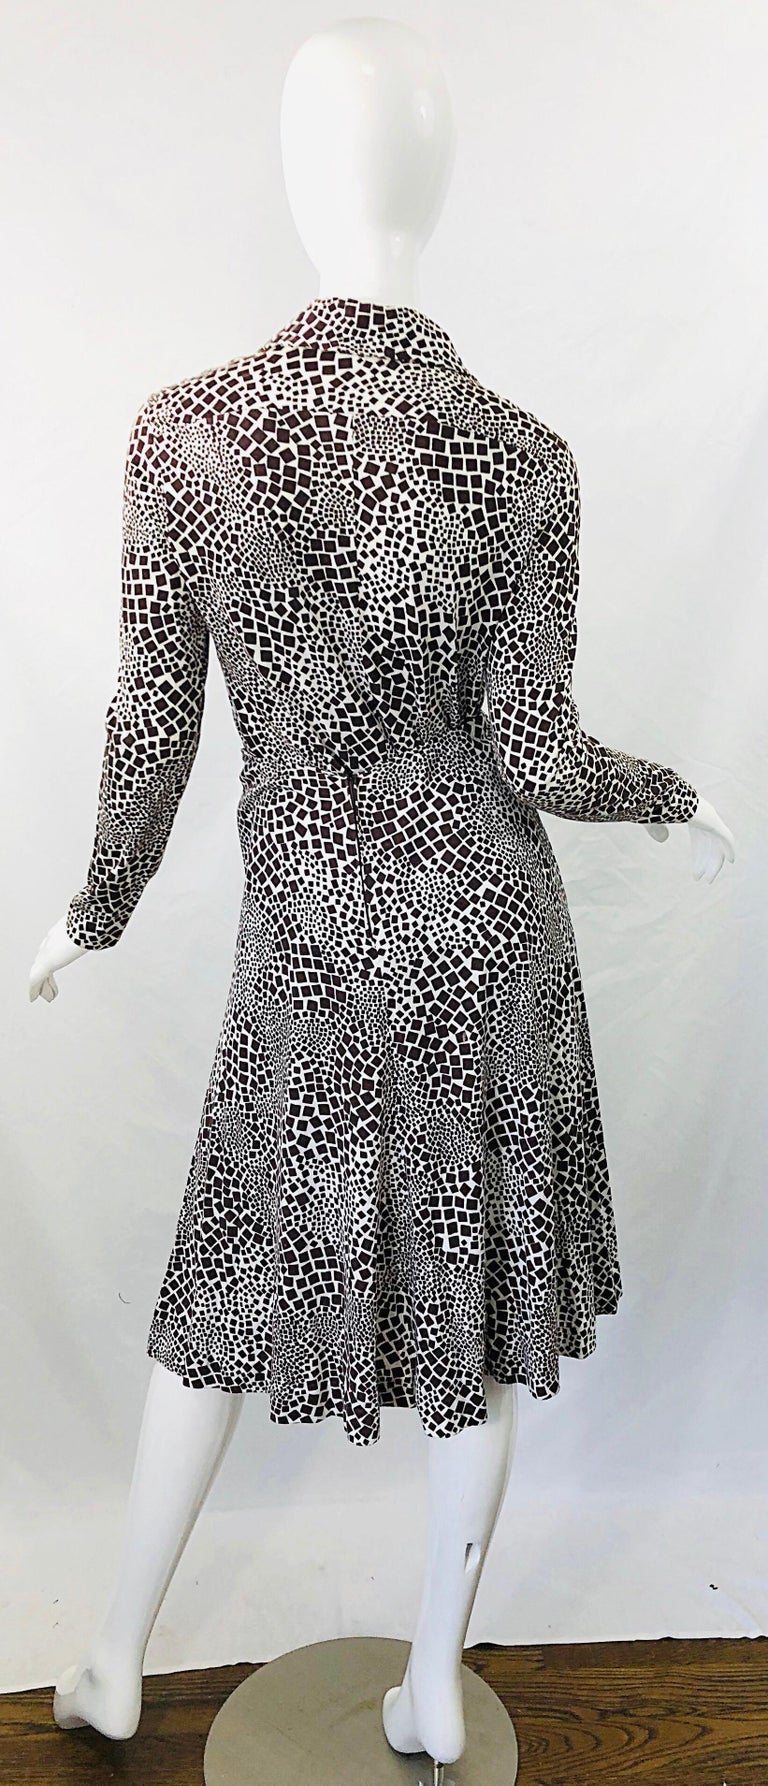 1970s Diane Von Furstenberg Brown and White Rayon Cotton Cut Out Top Skirt Dress For Sale 7